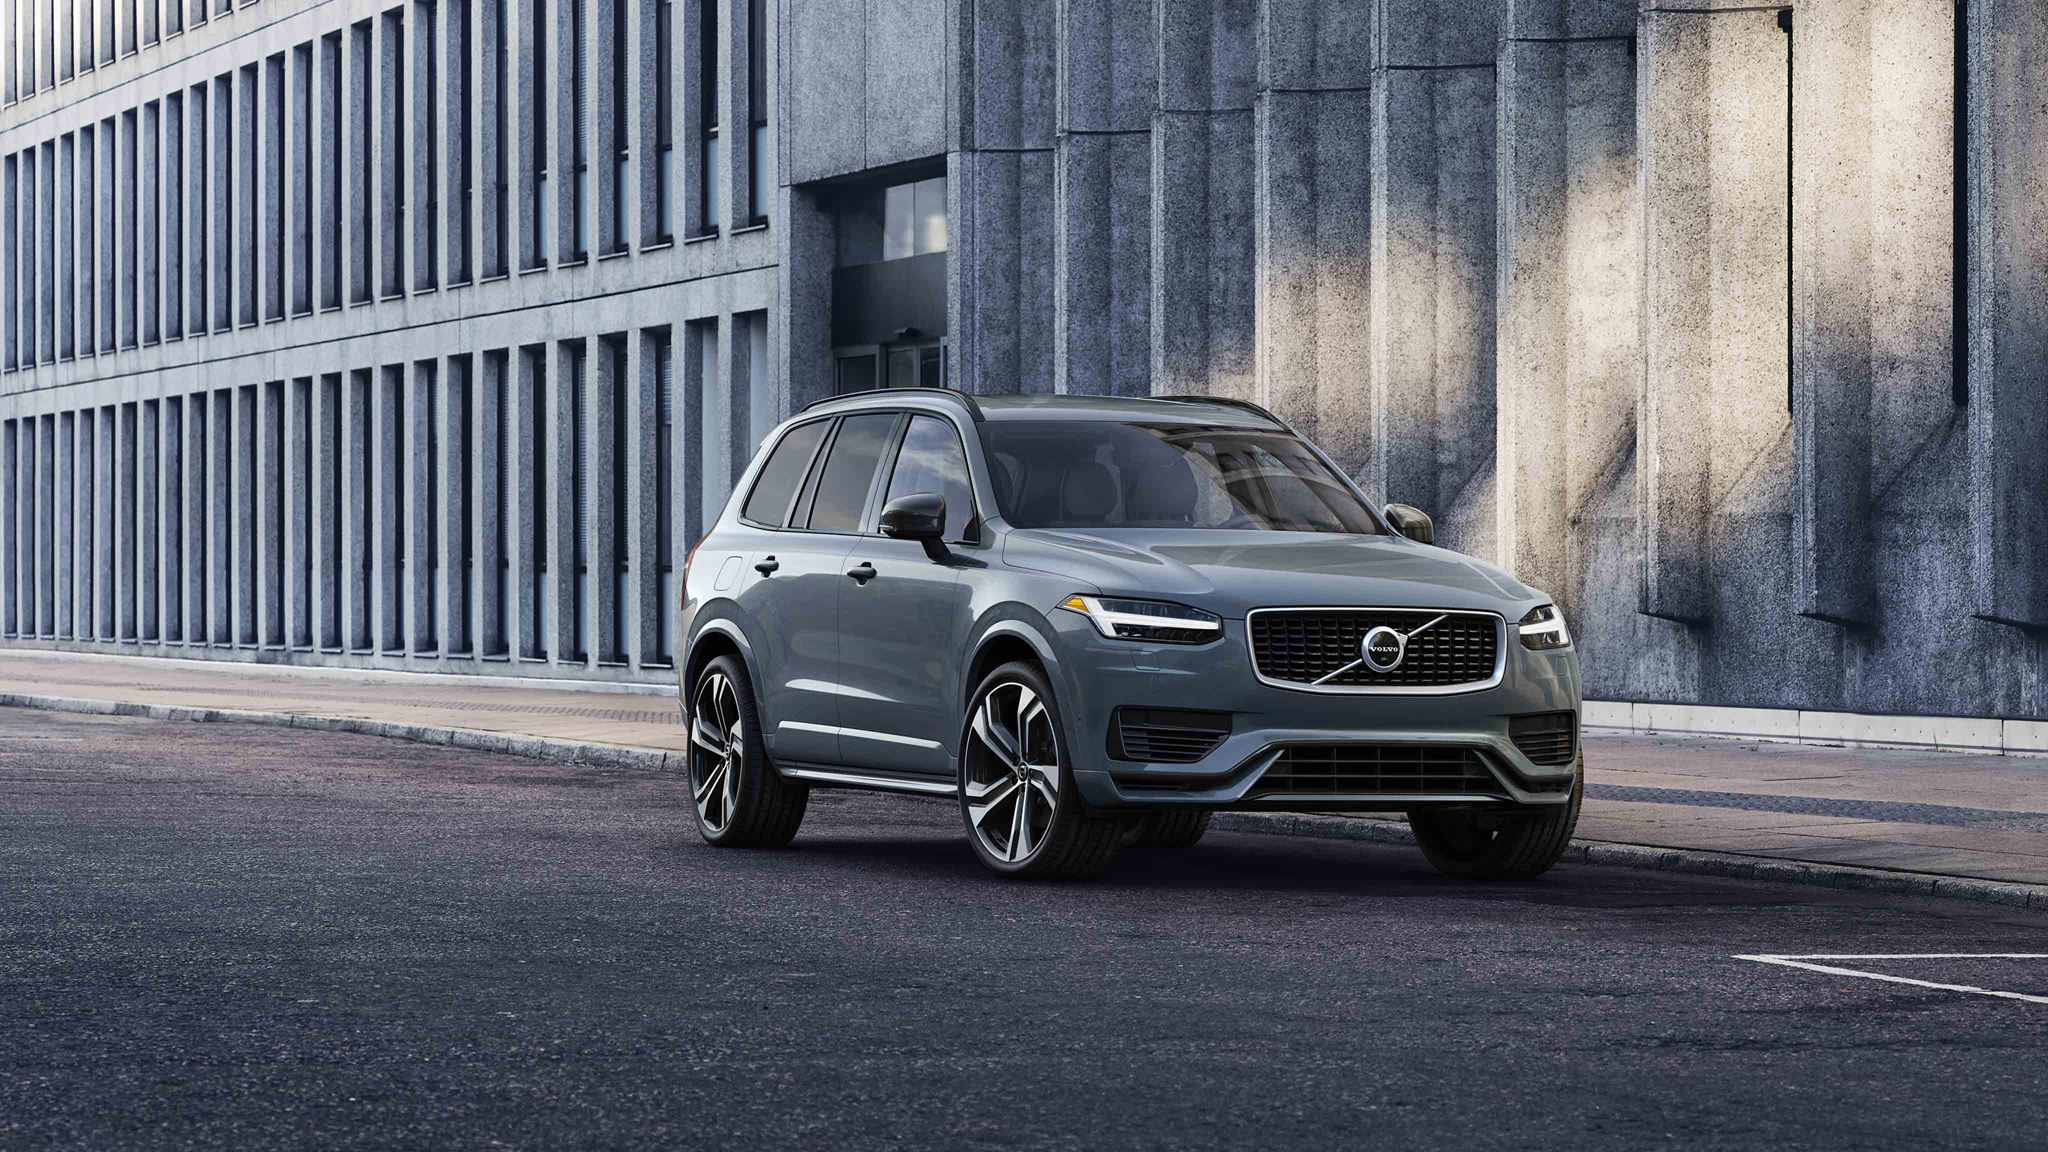 2020 volvo xc90 model review from volvo cars midlothian, va